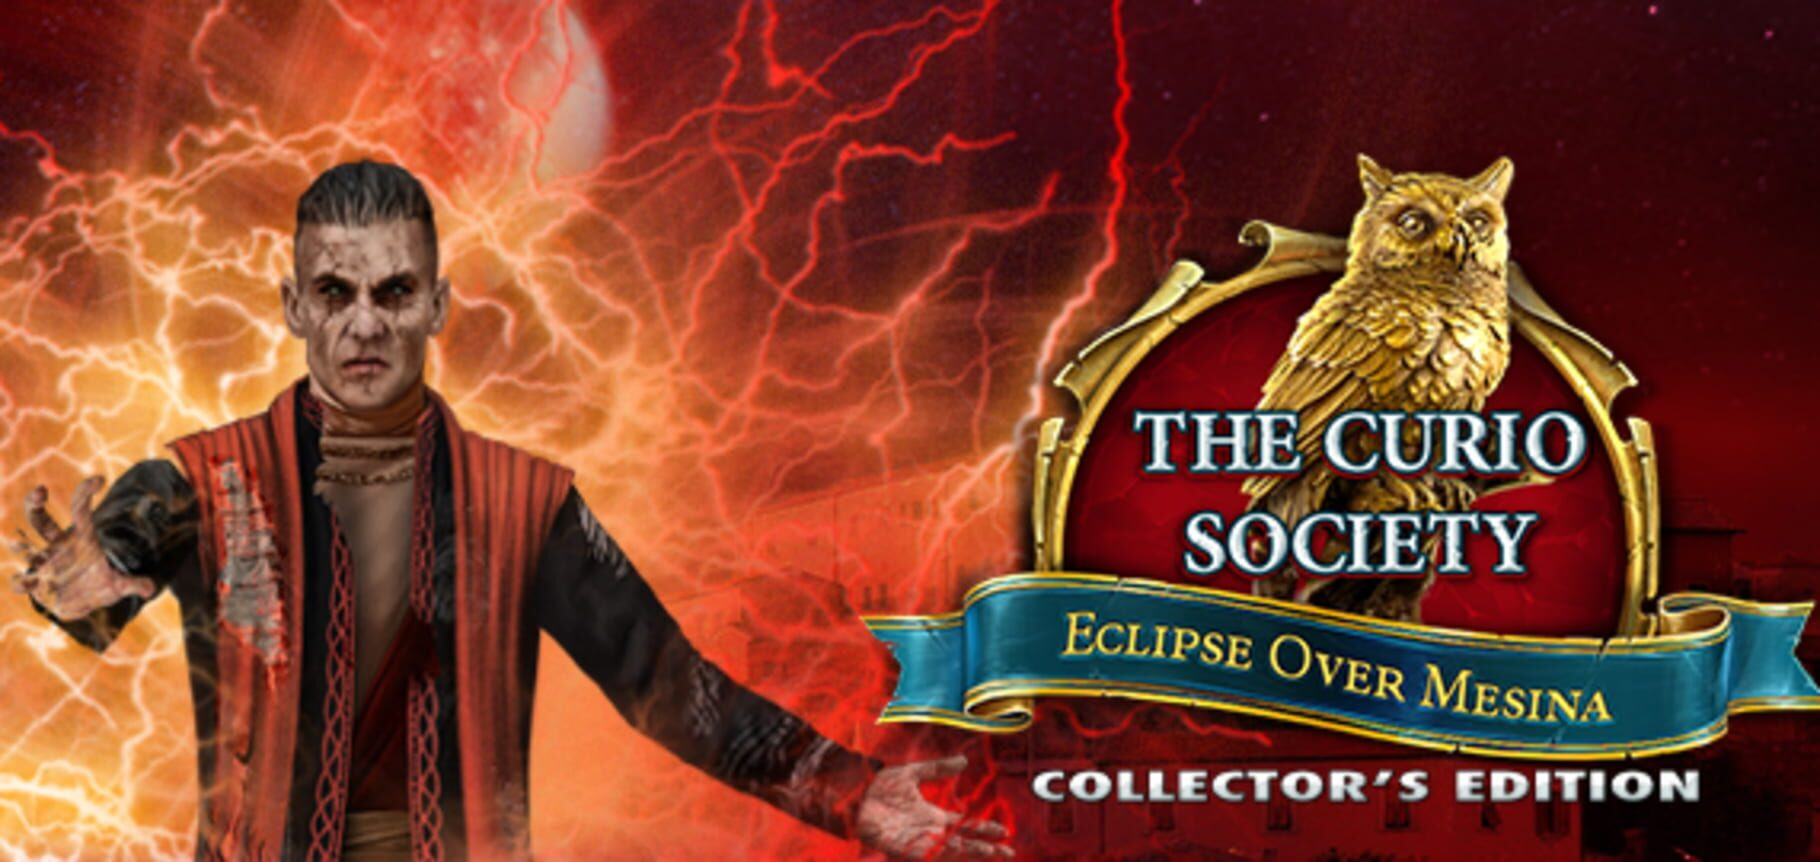 buy The Curio Society: Eclipse Over Mesina cd key for all platform